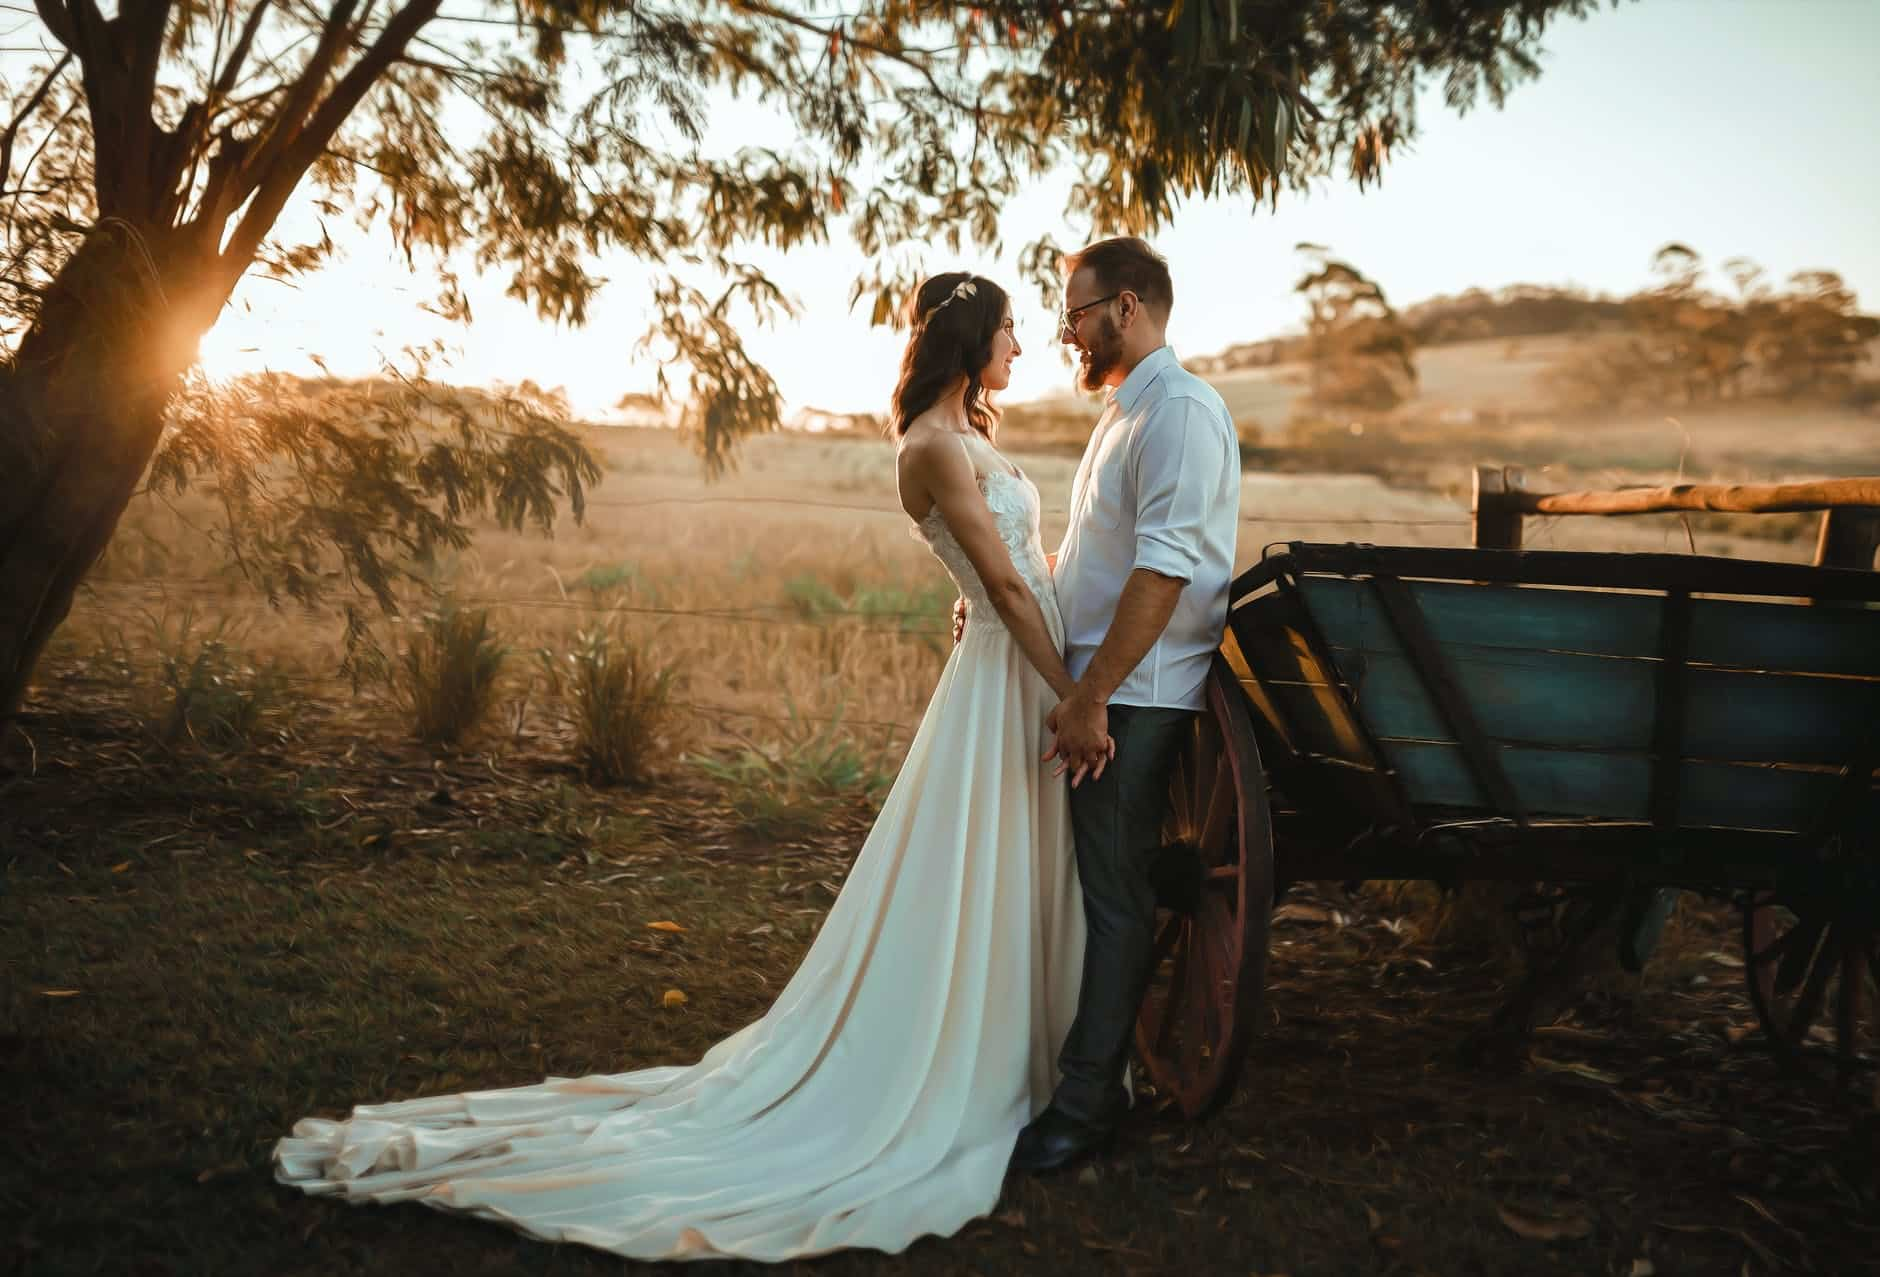 man and woman standing beside carriage